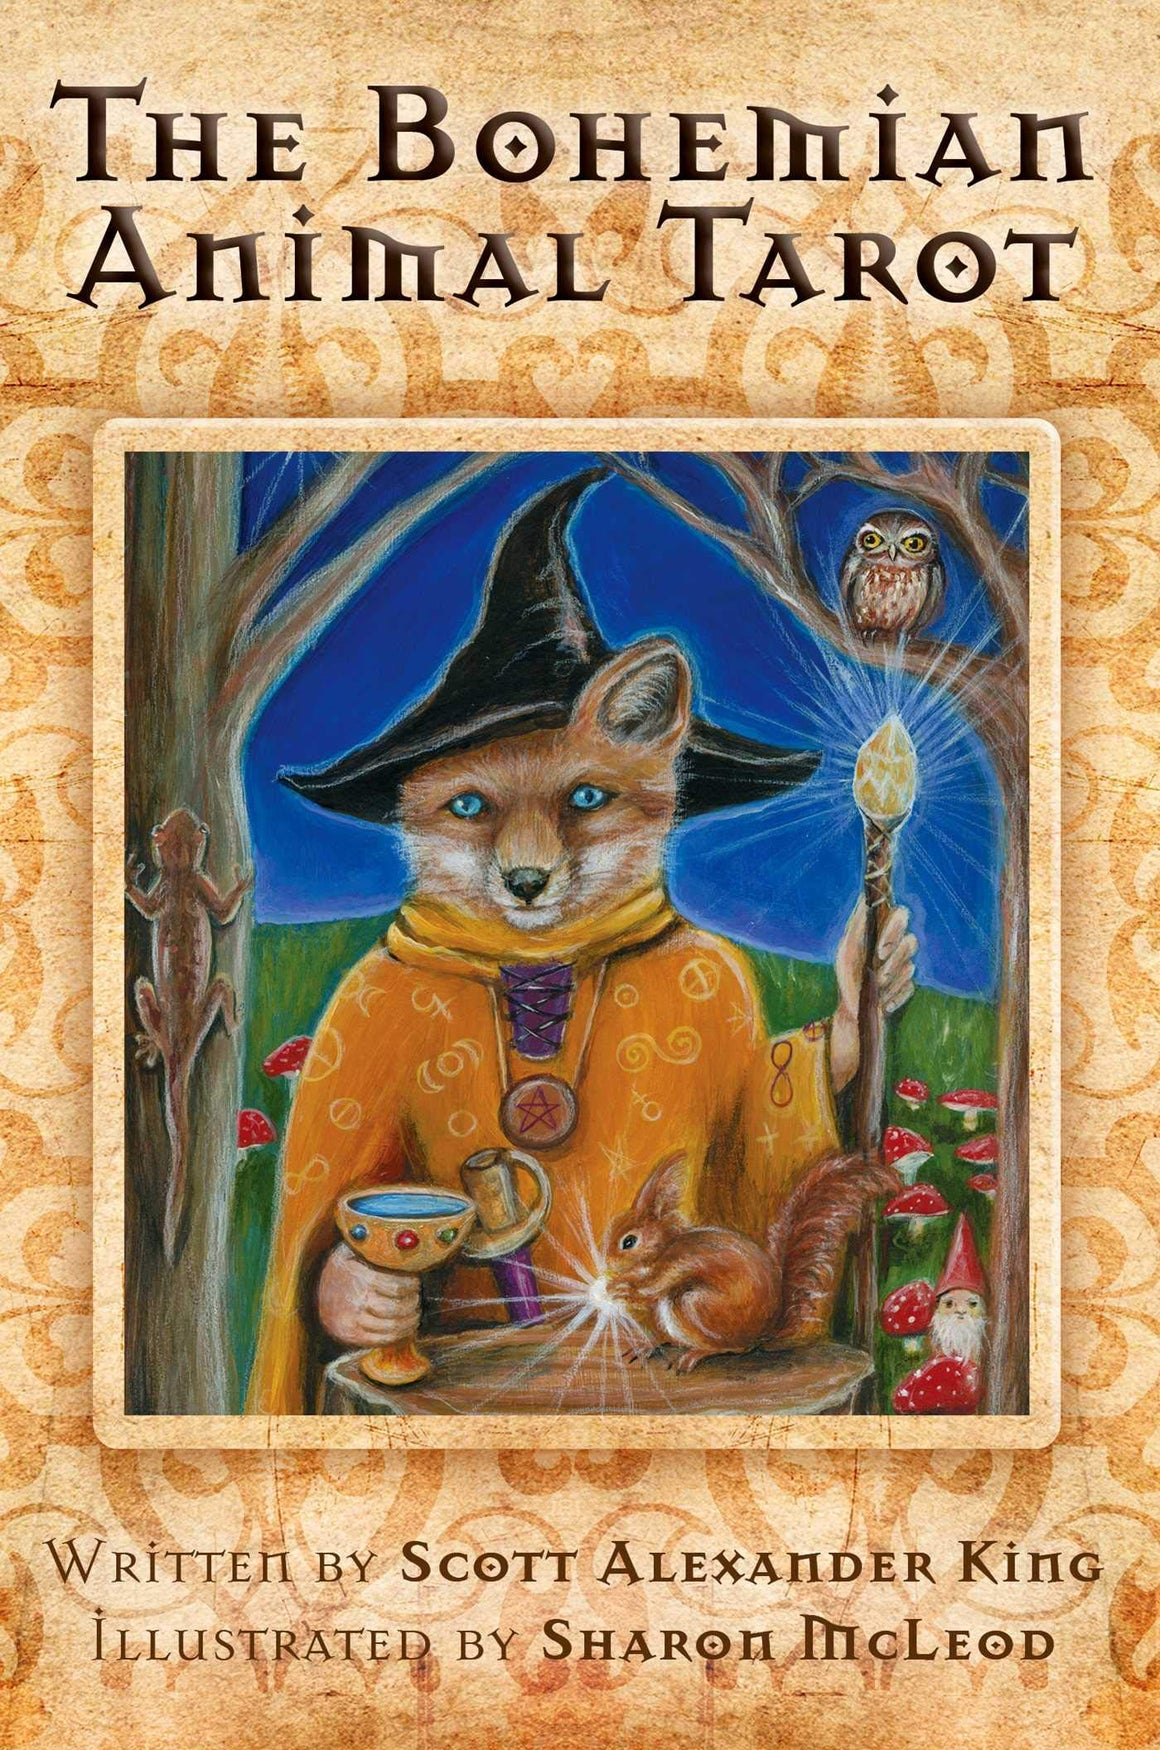 Bohemian Animal Tarot by Scott Alexander King